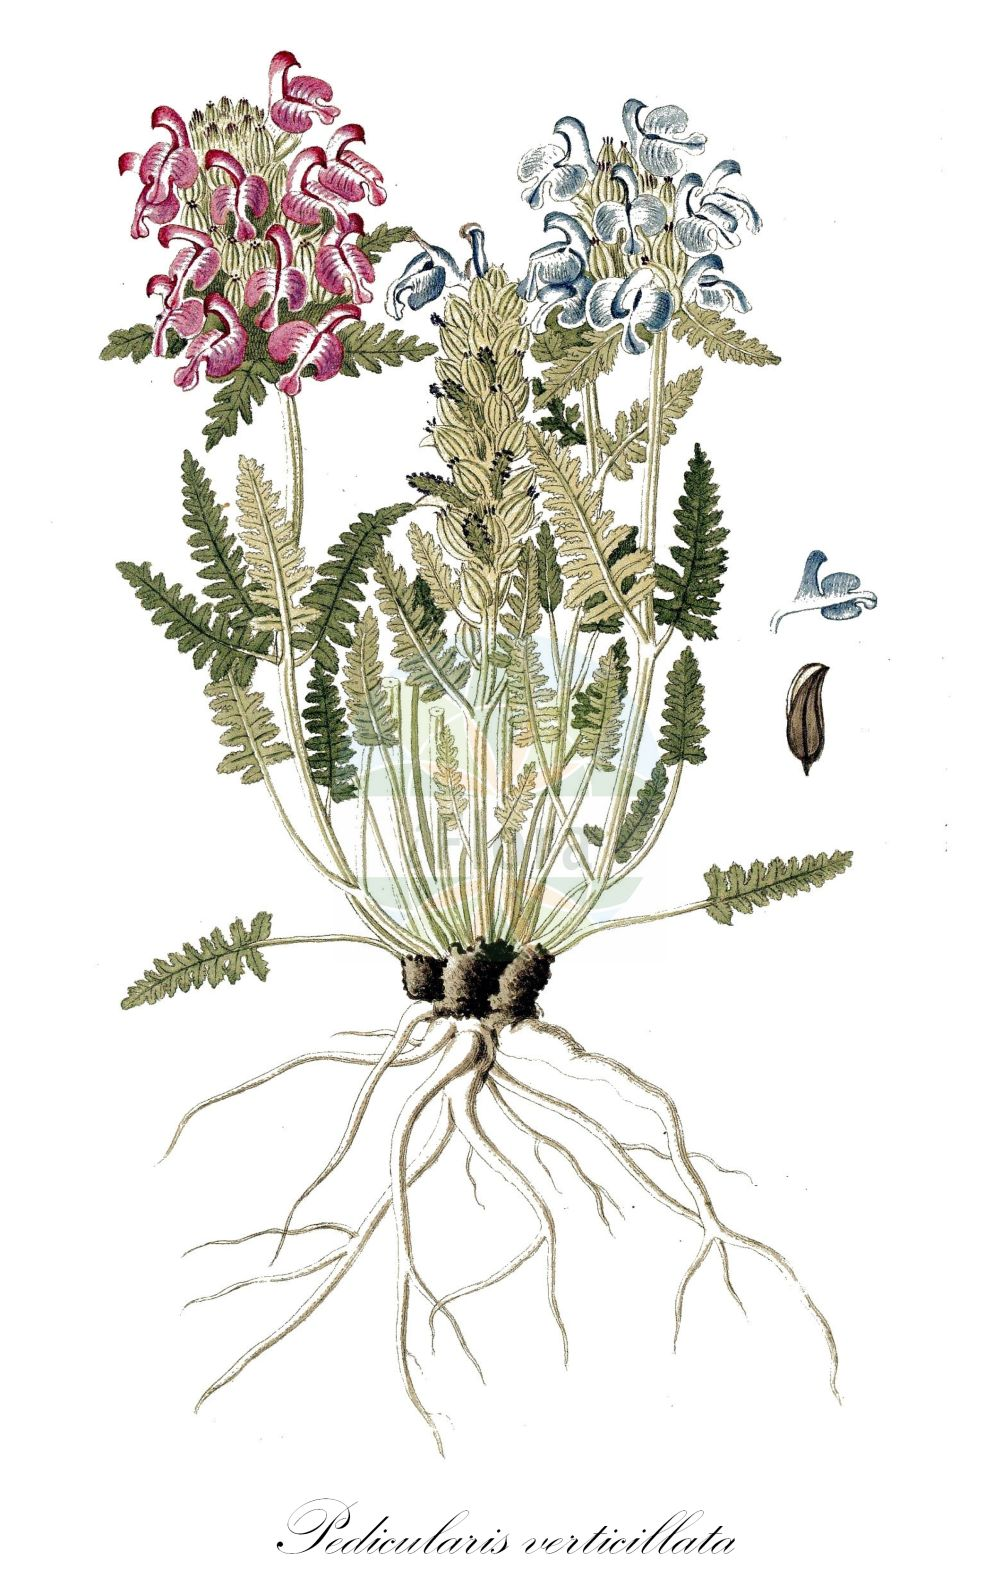 Historische Abbildung von Pedicularis verticillata (Quirlblaettriges Laeusekraut - Verticillate Lousewort). Das Bild zeigt Blatt, Bluete, Frucht und Same. ---- Historical Drawing of Pedicularis verticillata (Quirlblaettriges Laeusekraut - Verticillate Lousewort).The image is showing leaf, flower, fruit and seed.(Pedicularis verticillata,Quirlblaettriges Laeusekraut,Verticillate Lousewort,Whorled Lousewort,Pedicularis,Laeusekraut,Lousewort,Orobanchaceae,Sommerwurzgewaechse,Broomrape family,Blatt,Bluete,Frucht,Same,leaf,flower,fruit,seed,von Jacquin (1727-1817))